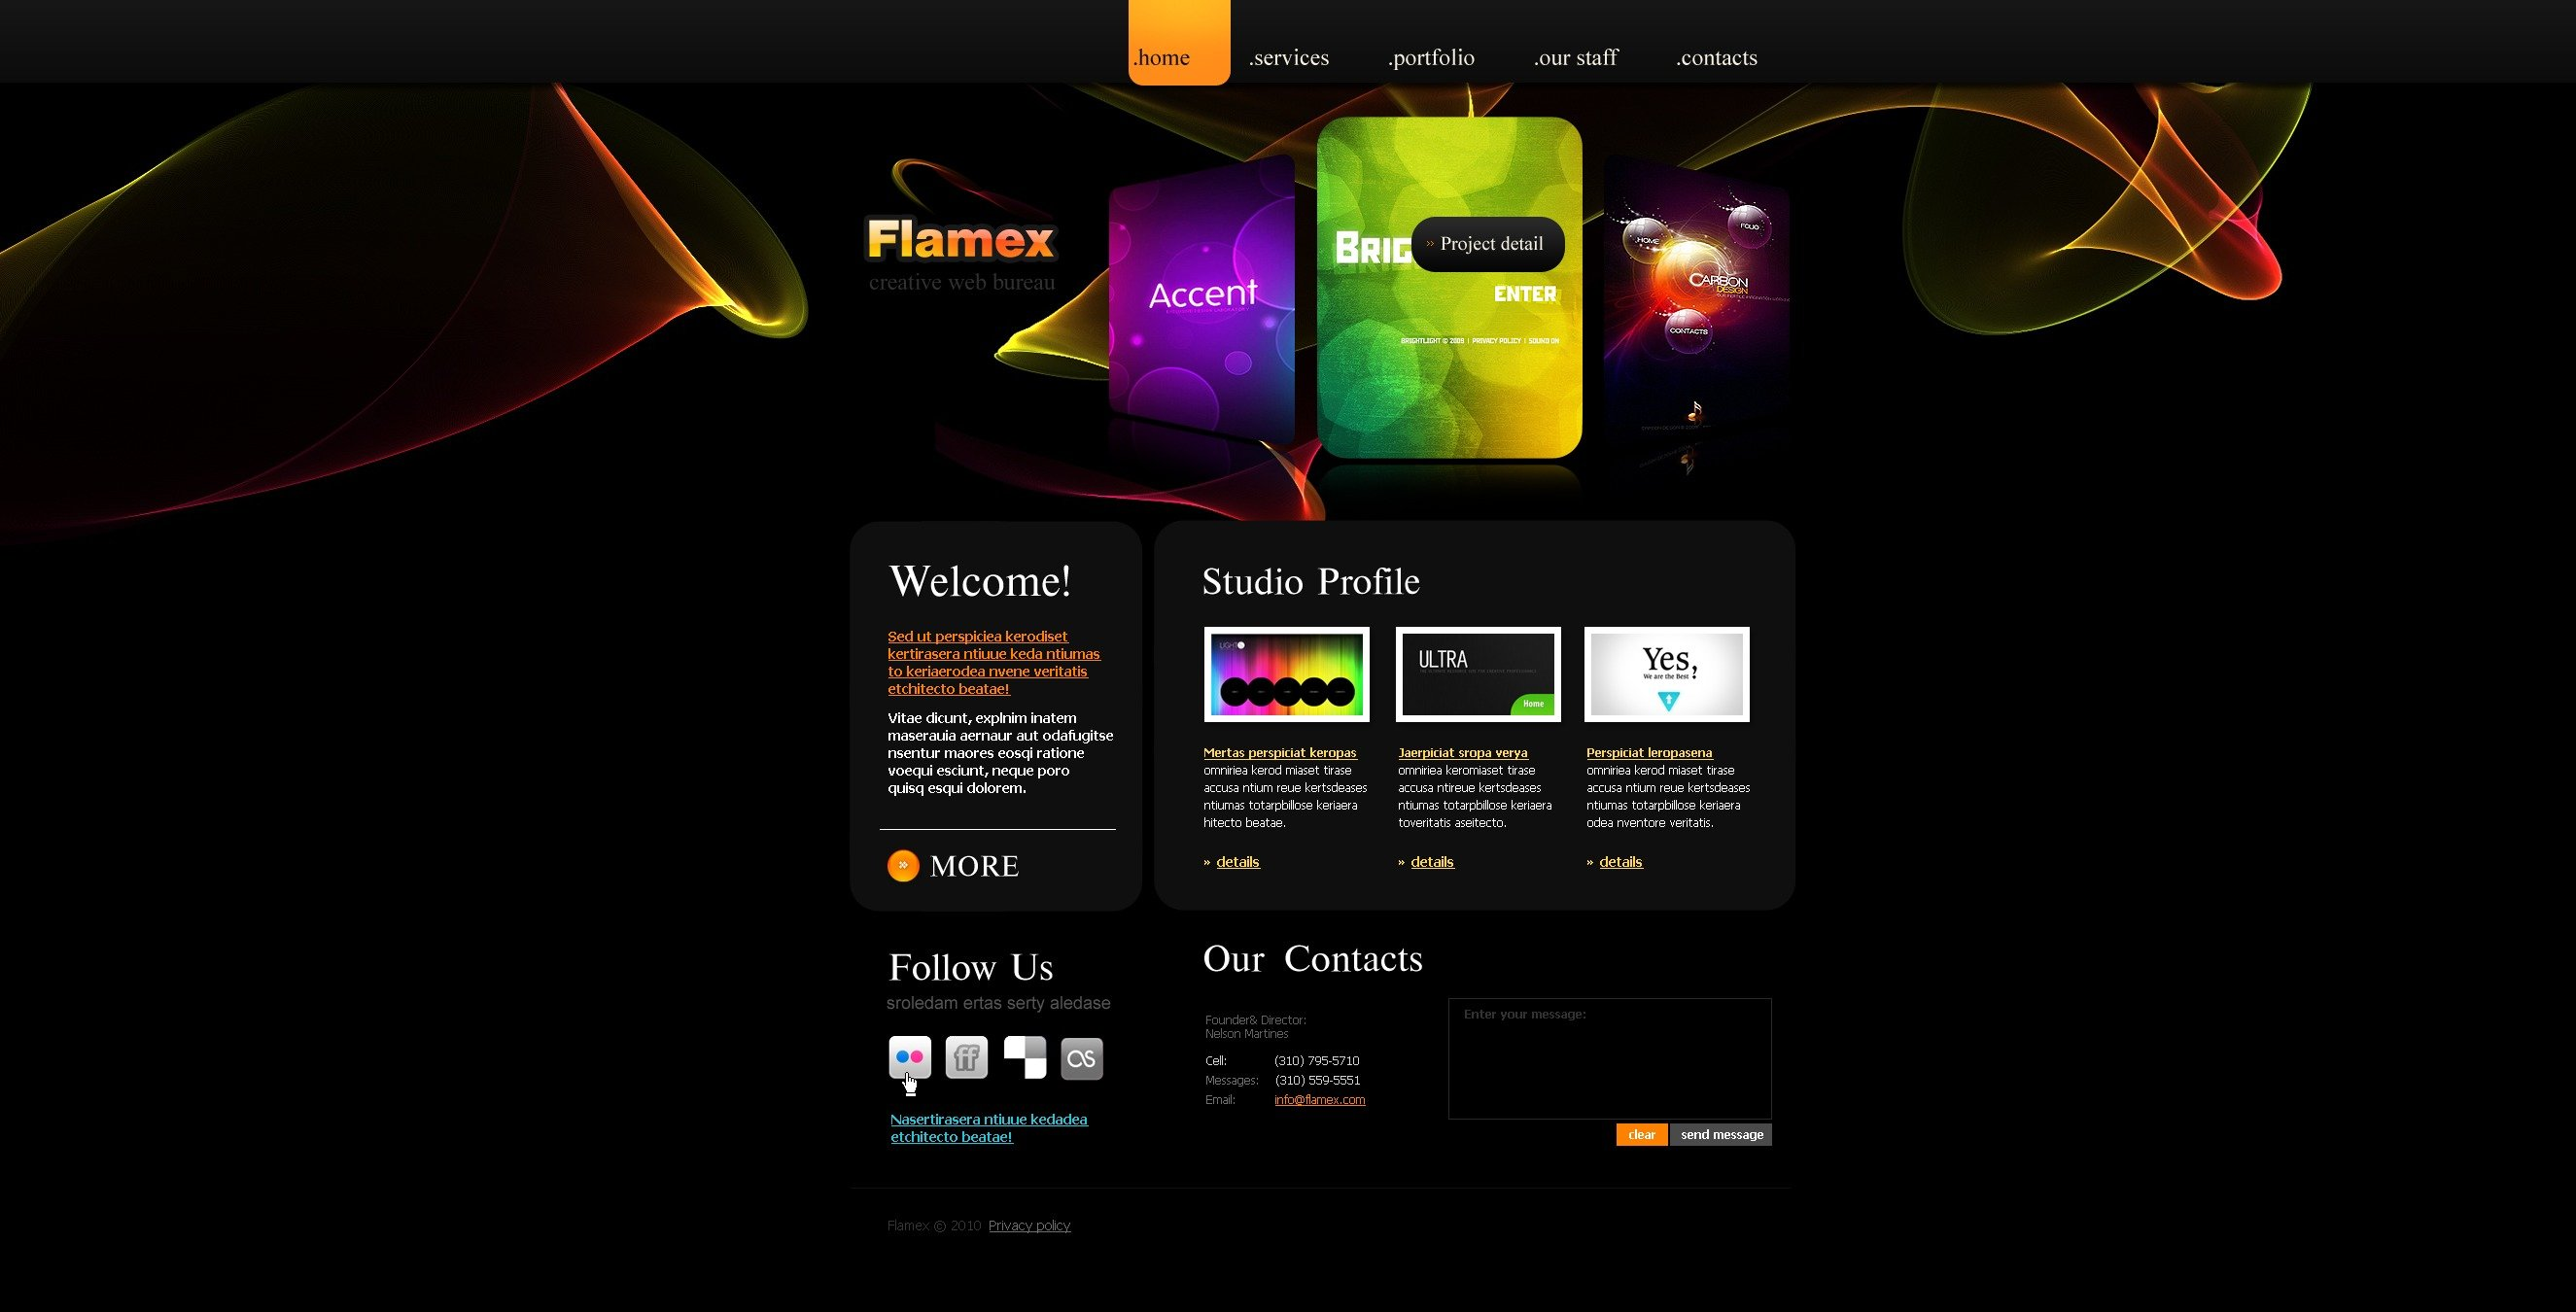 The Flamex Design Studio PSD Design 54426, one of the best PSD templates of its kind (web design, flash 8, wide), also known as flamex design studio PSD template, creative art gallery PSD template, artists PSD template, painting PSD template, painters PSD template, web development PSD template, webmasters PSD template, designers PSD template, internet PSD template, www PSD template, sites PSD template, web design PSD template, webpage PSD template, personal portfolio and related with flamex design studio, creative art gallery, artists, painting, painters, web development, webmasters, designers, internet, www, sites, web design, webpage, personal portfolio, etc.